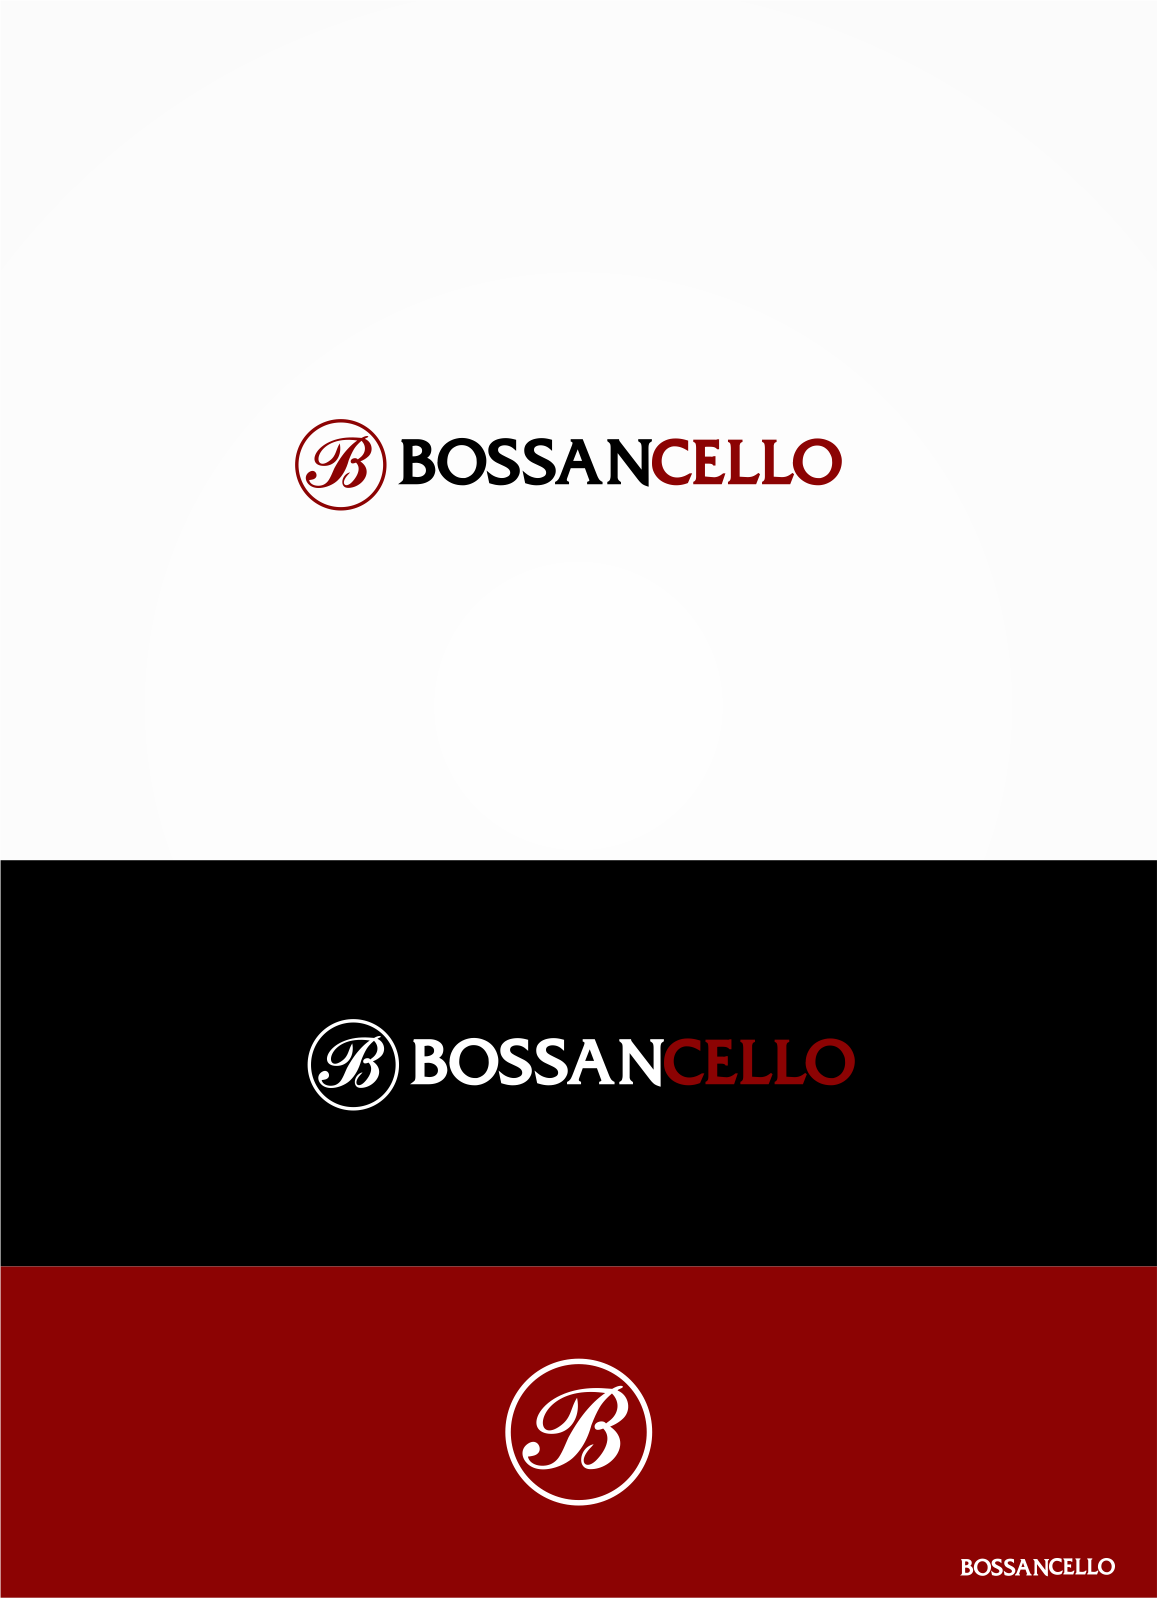 Create a logo for a duo cello/classical guitar, performing bossanova and pop songs live